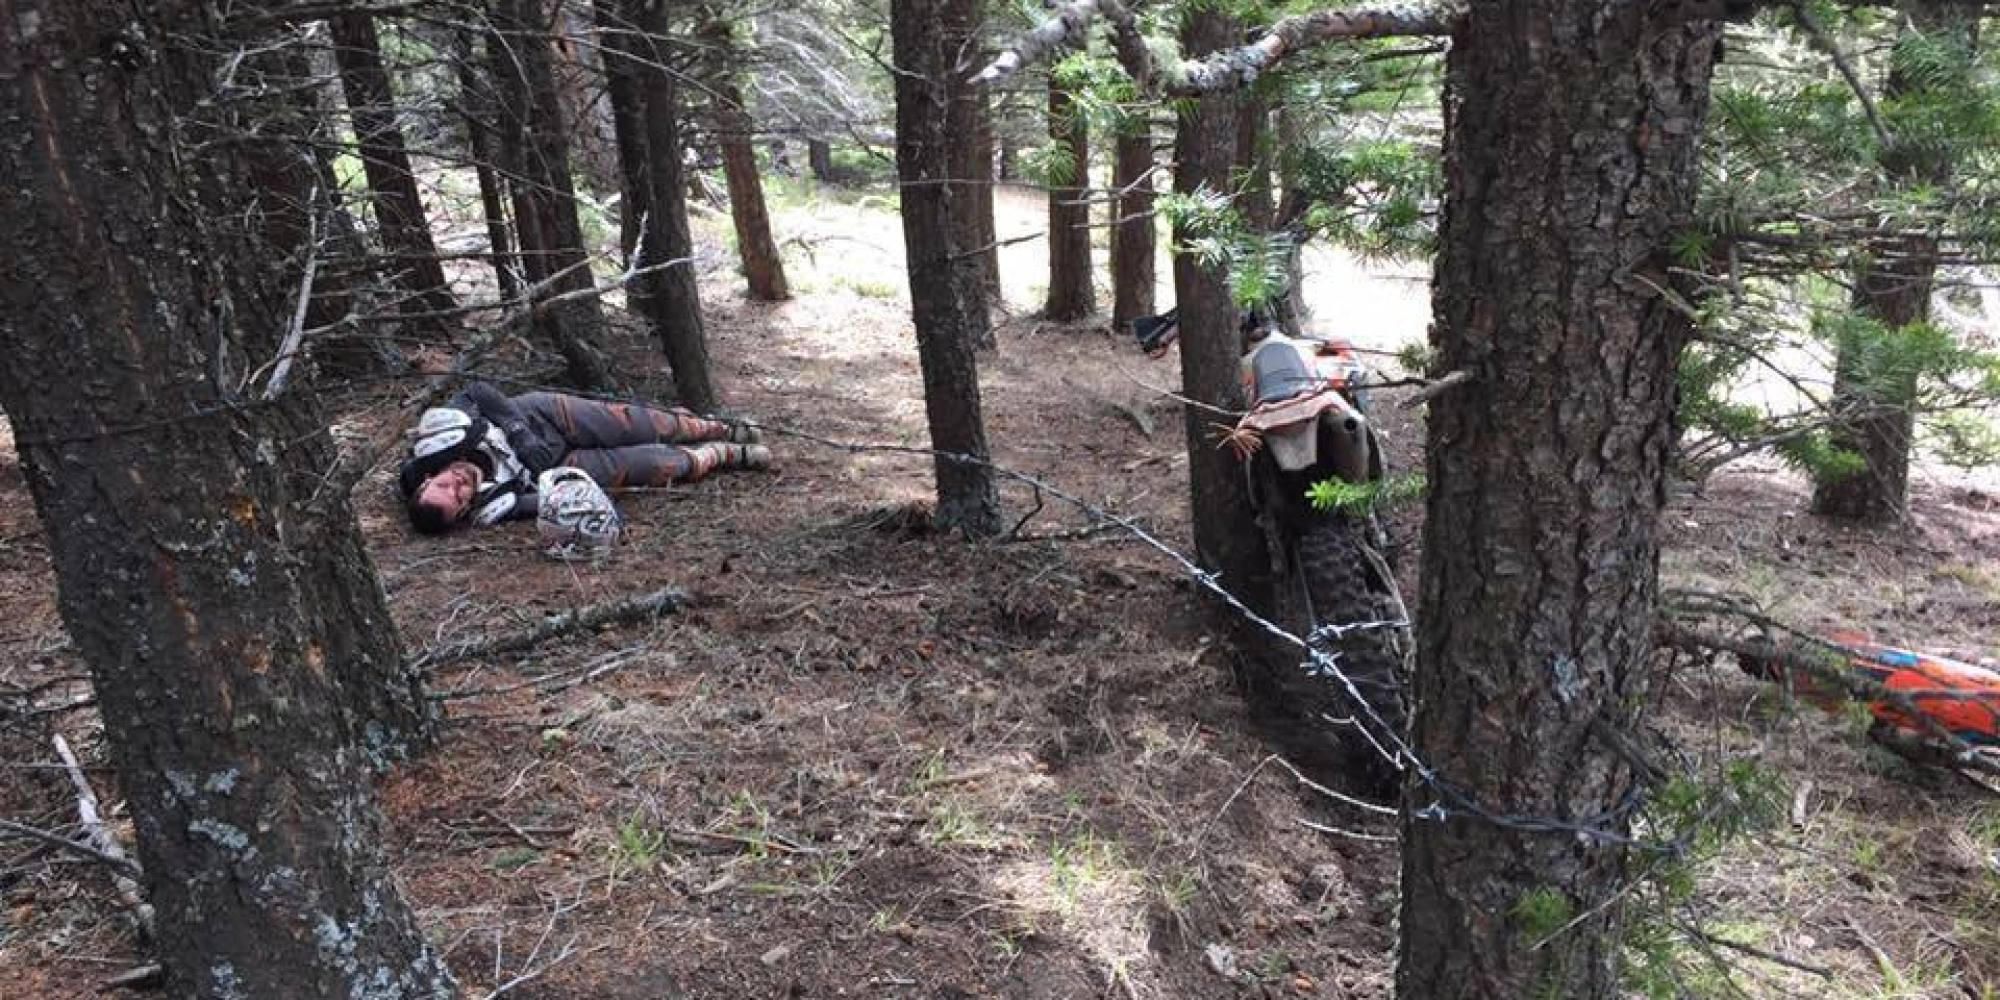 Alberta dirt bikers narrowly avoid injury after barbed